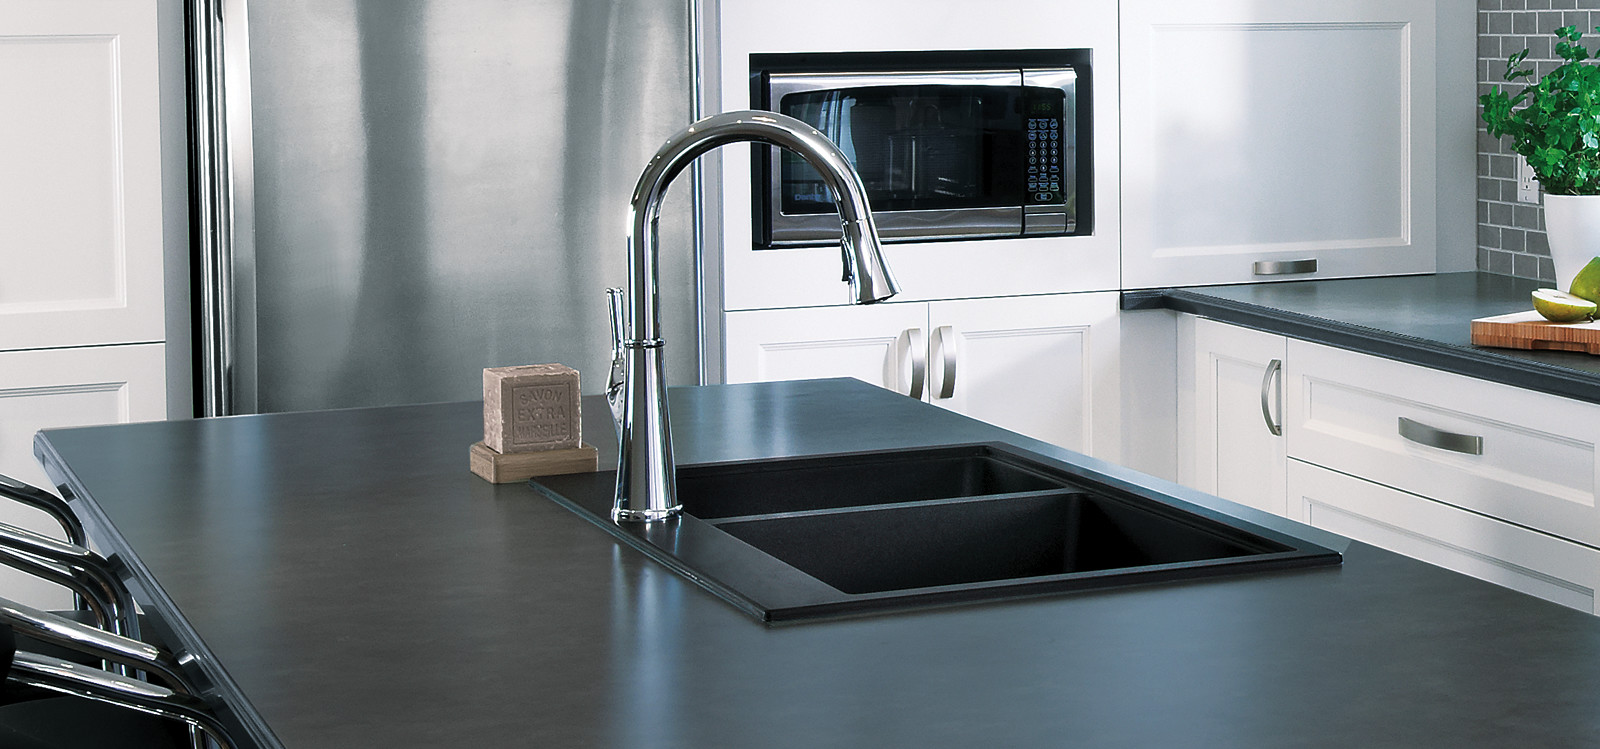 The Best 100+ Rona Kitchen Sink Image Collections (nickbarron.co ...